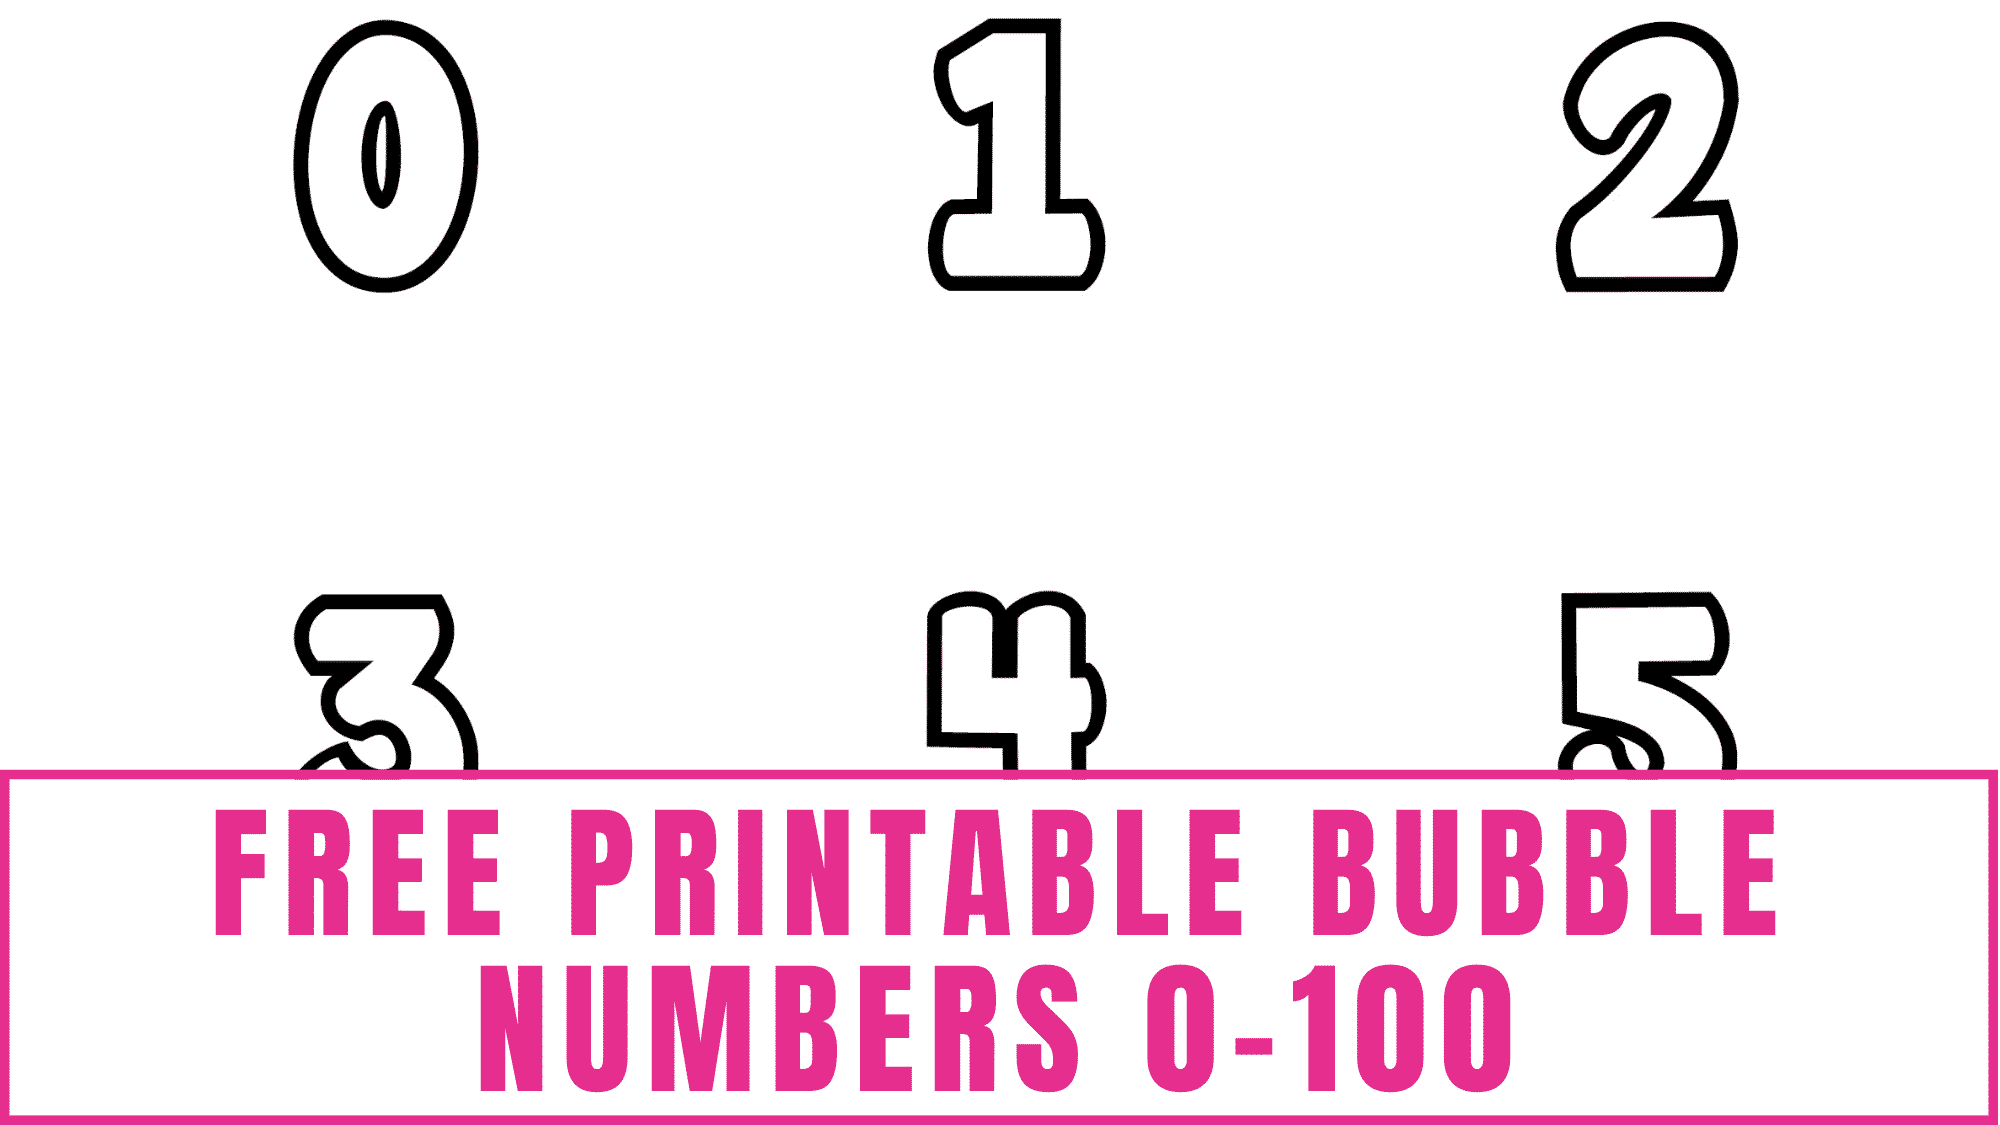 Can your kid count to 100? If they need help learning how to count numbers use these free printable bubble numbers 0-100 to make flashcards, educational coloring sheets, tracing worksheets, and more!